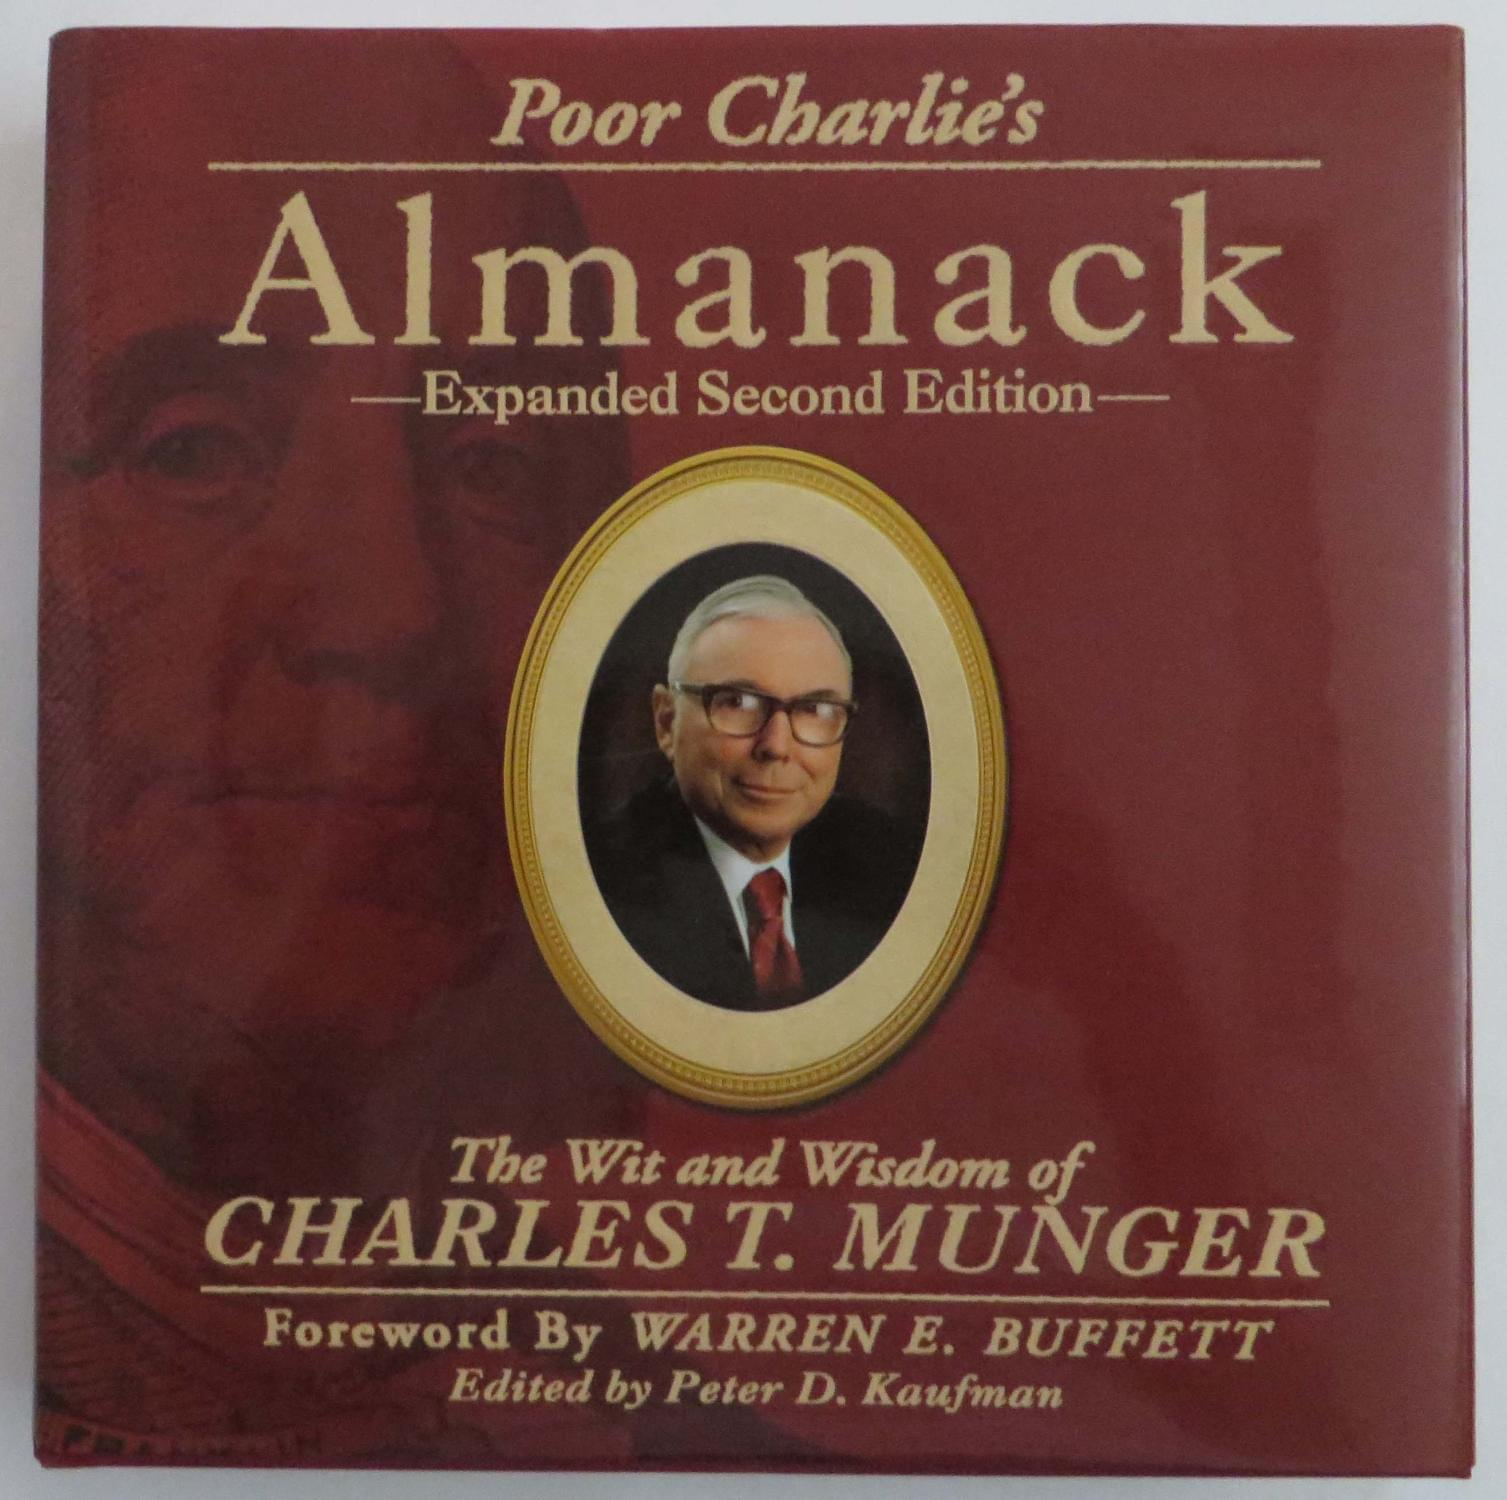 Poor Charlie's Almanack – The Wit and Wisdom of Charles T. Munger, de Peter D. Kaufman